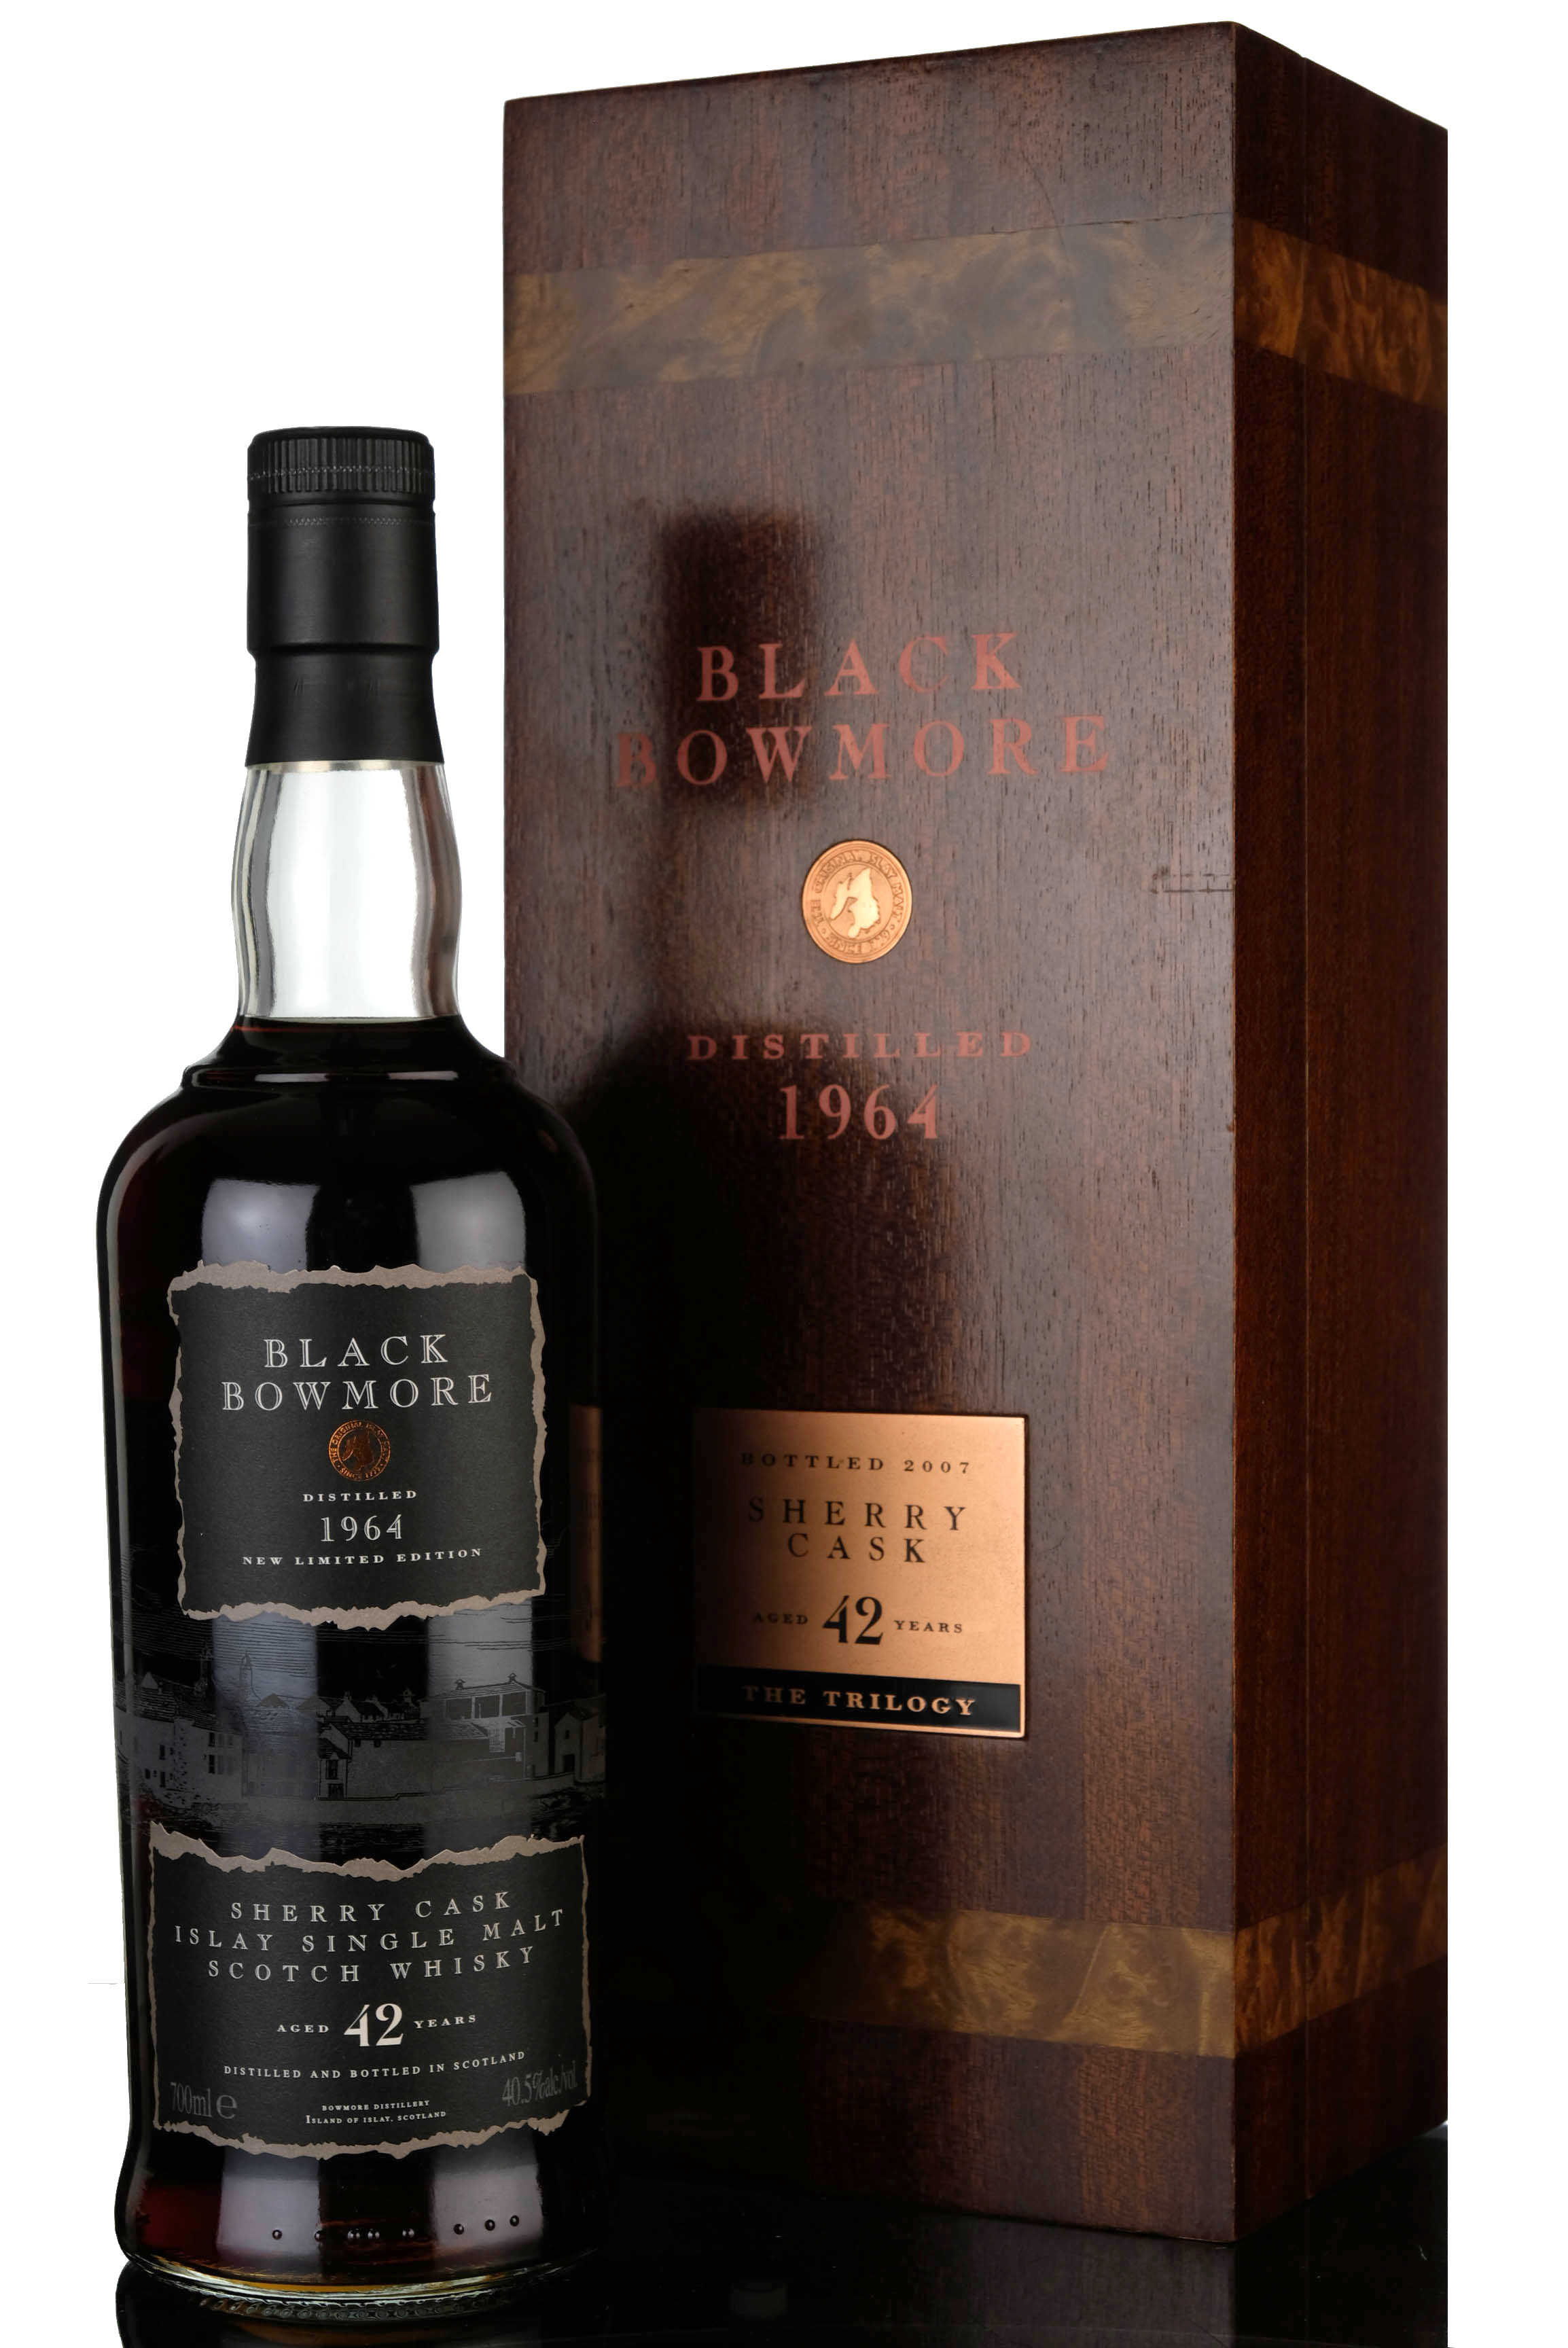 black bowmore 1964 - 42 year old